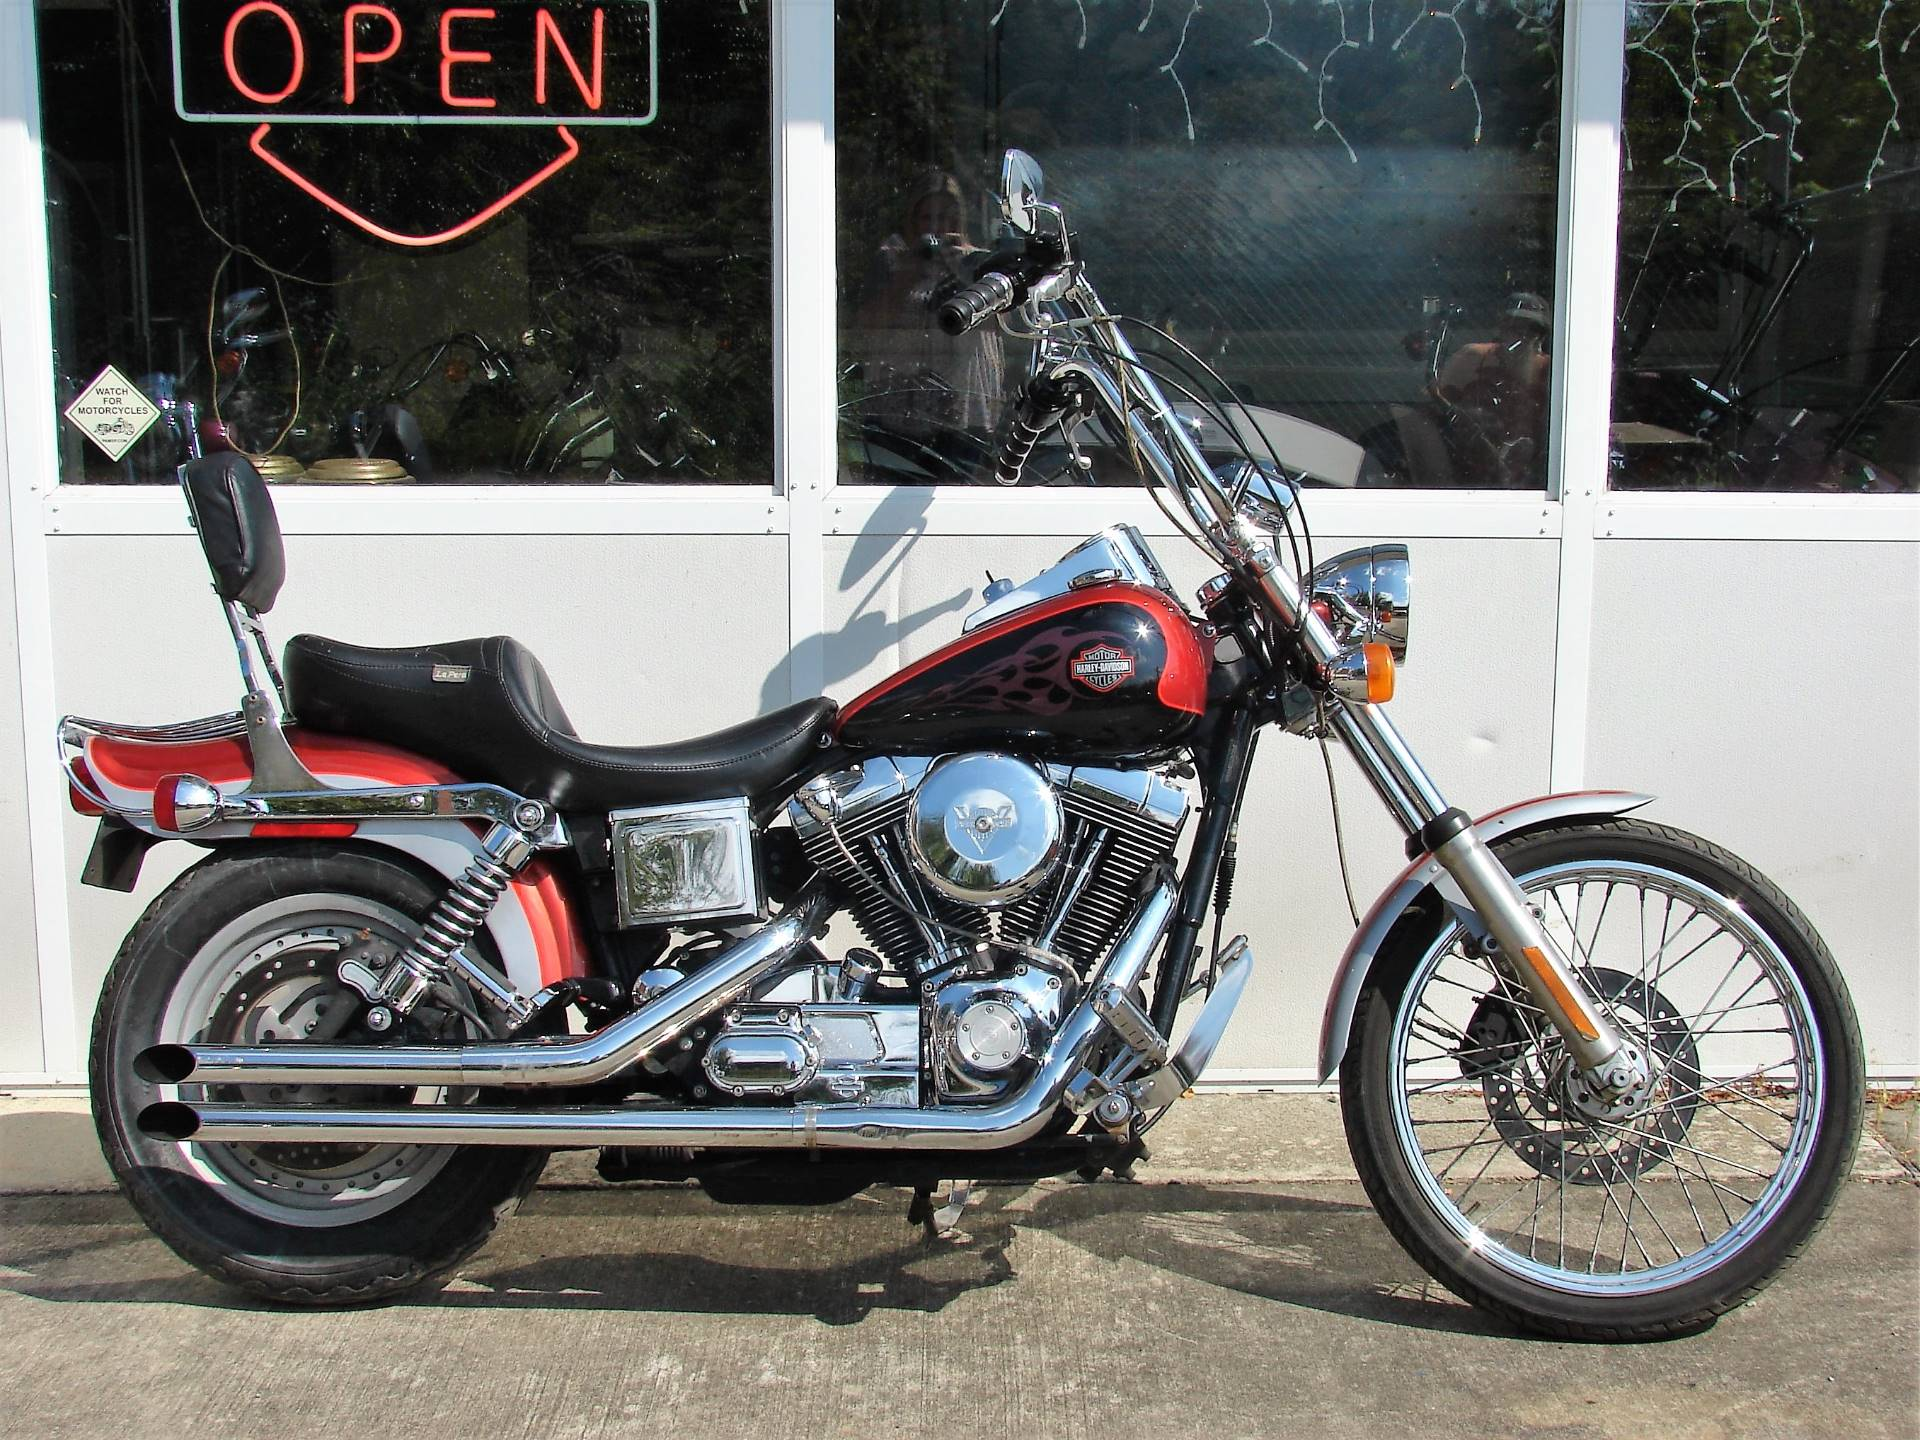 2000 Harley-Davidson FXDWG Dyna Wide Glide in Williamstown, New Jersey - Photo 11